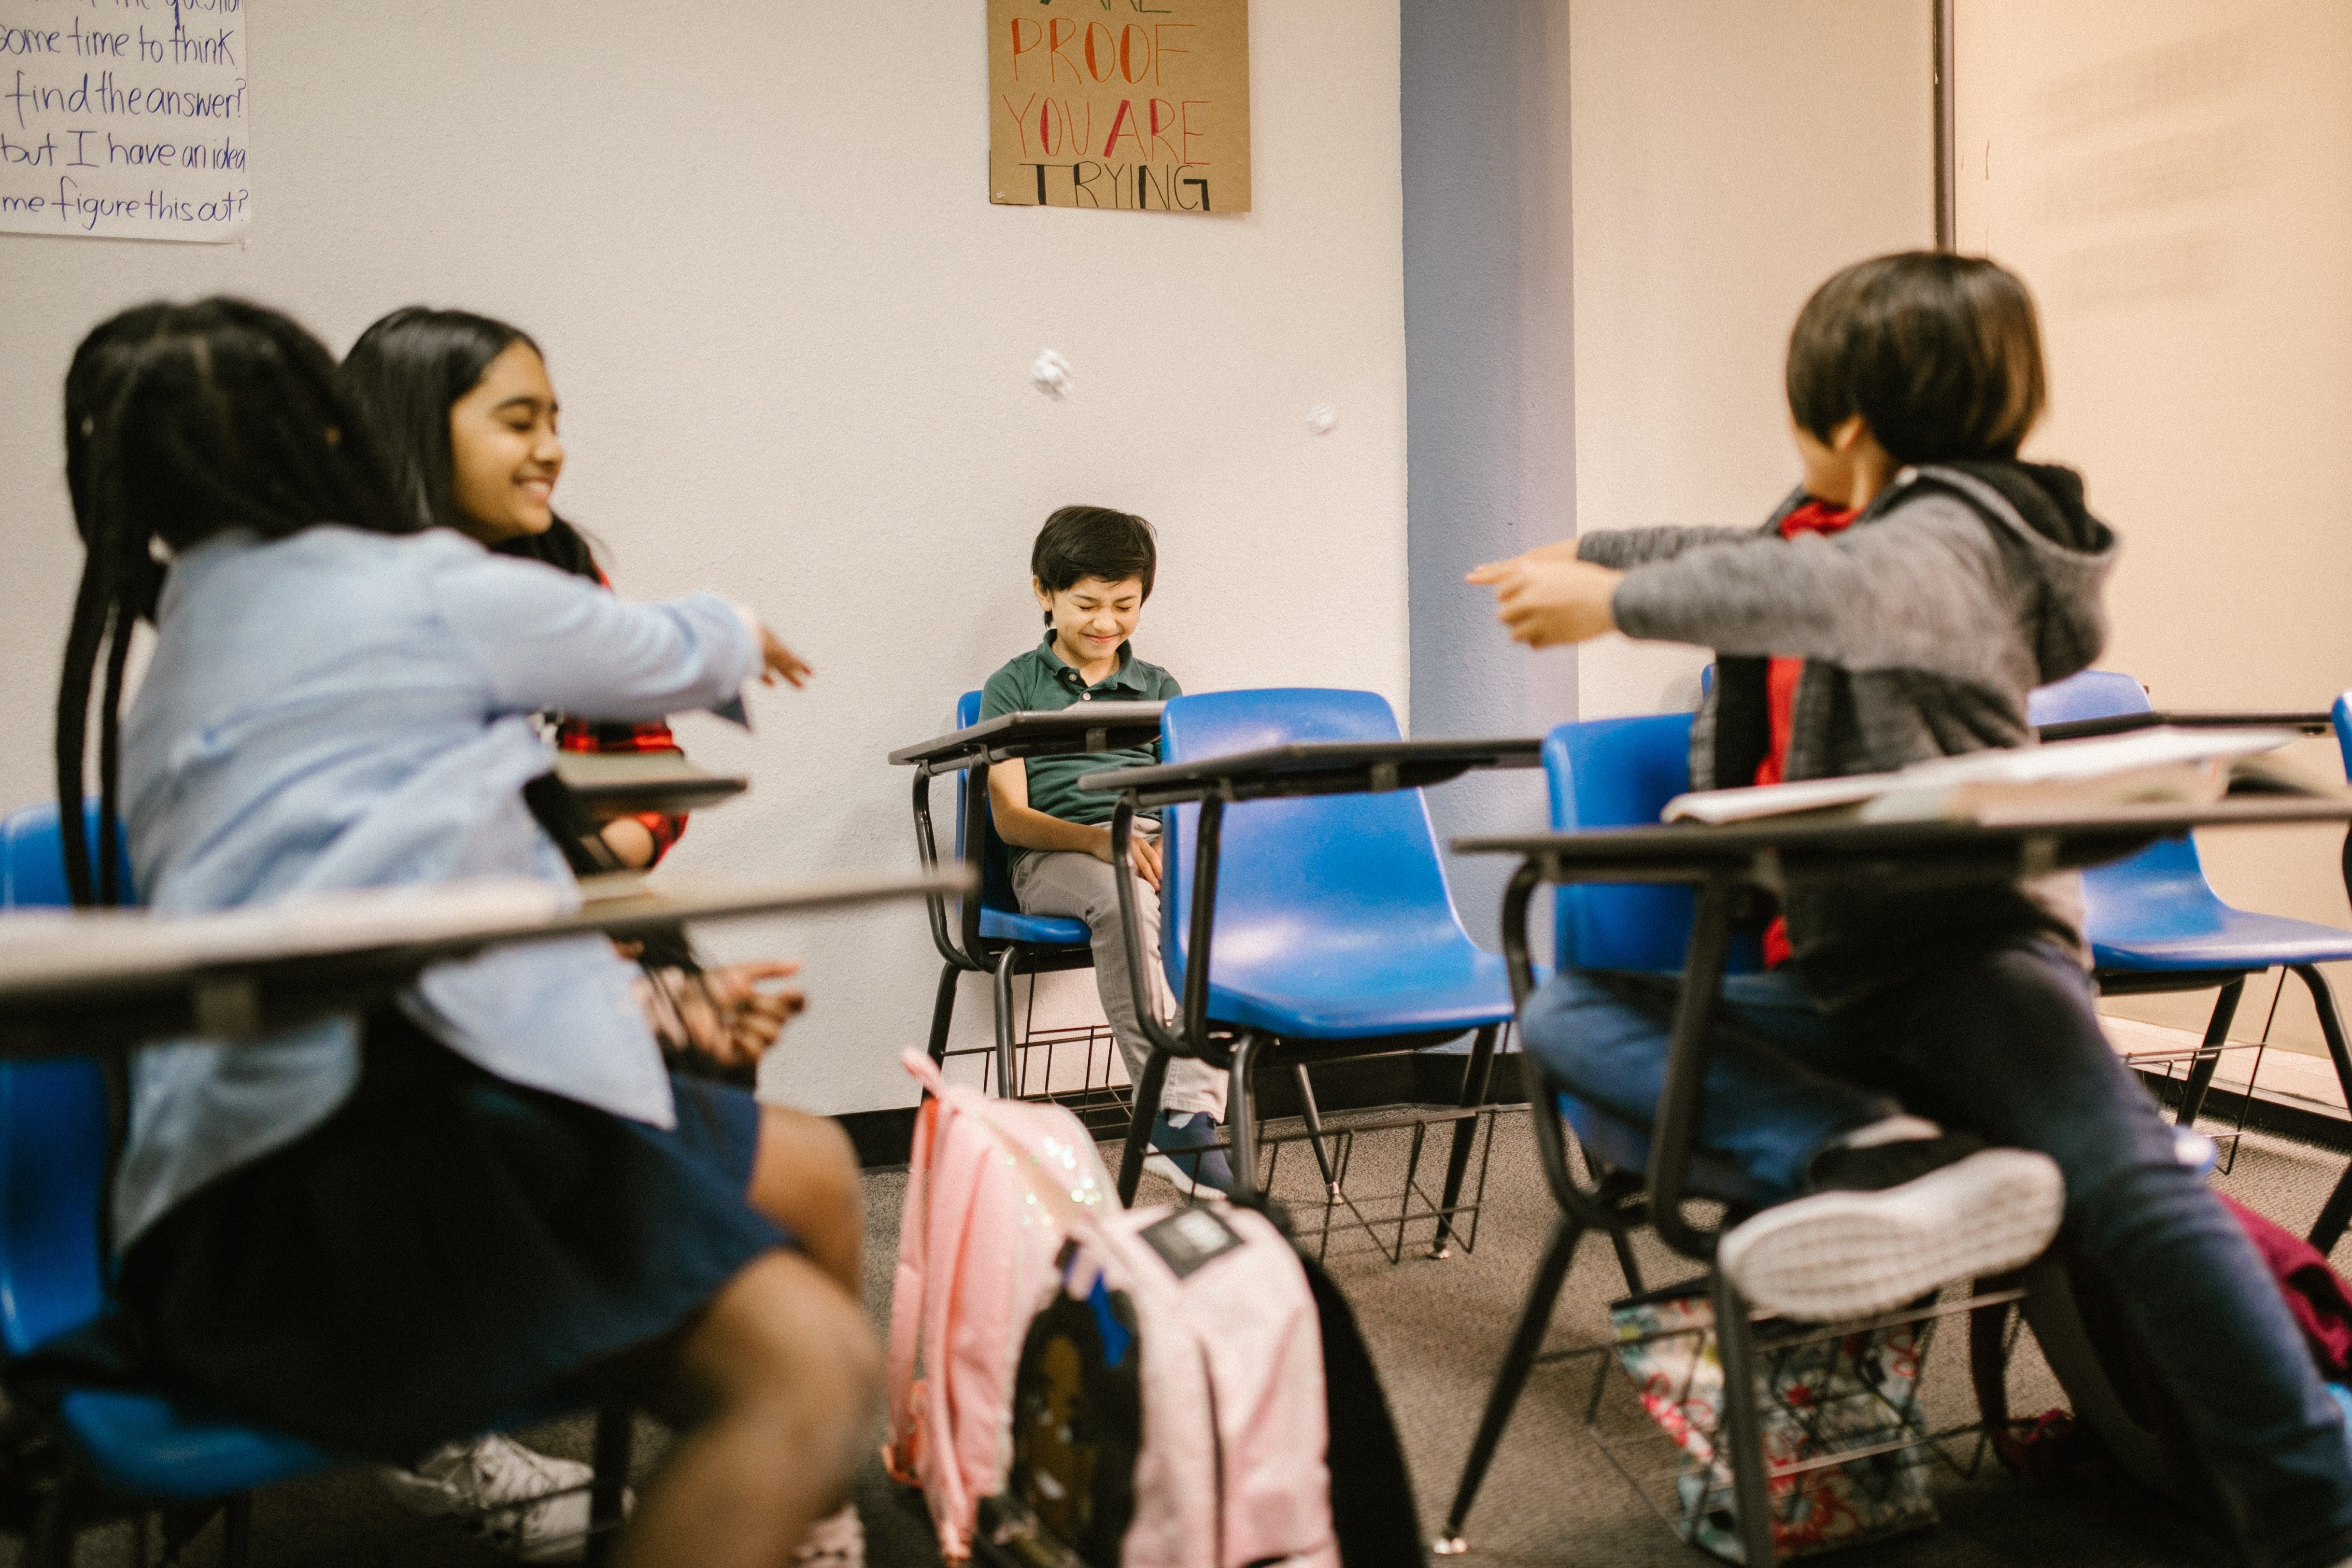 Boy getting bullied by his classmates   Photo: Pexels